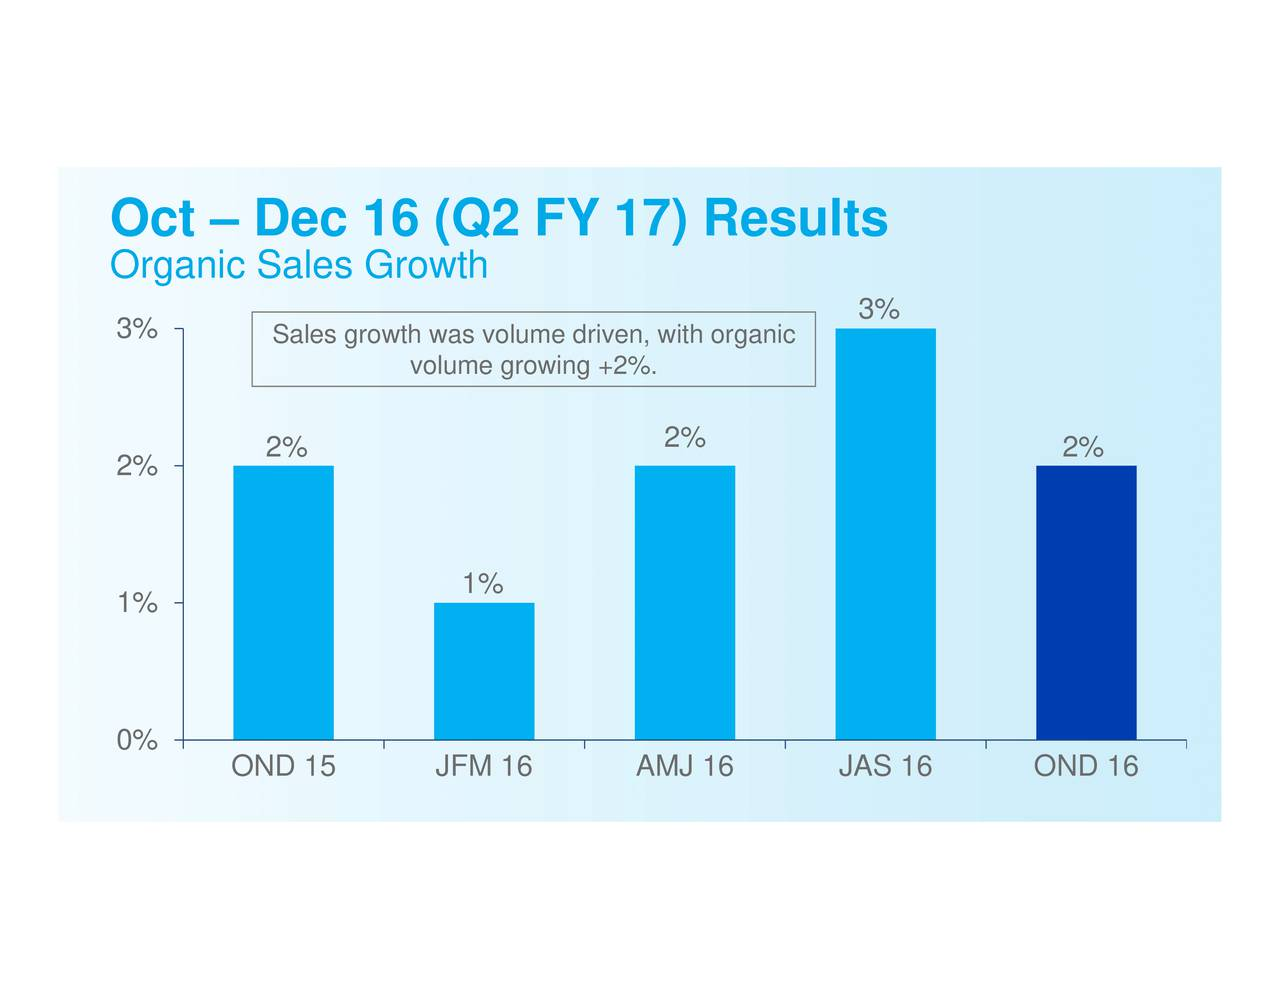 3% 1% volume growing +2%. Sales2%rowth was volume driven, with organic OND 15 JFM 16 AMJ 16 OcOrganieSals6GrQwthFY 17) Results